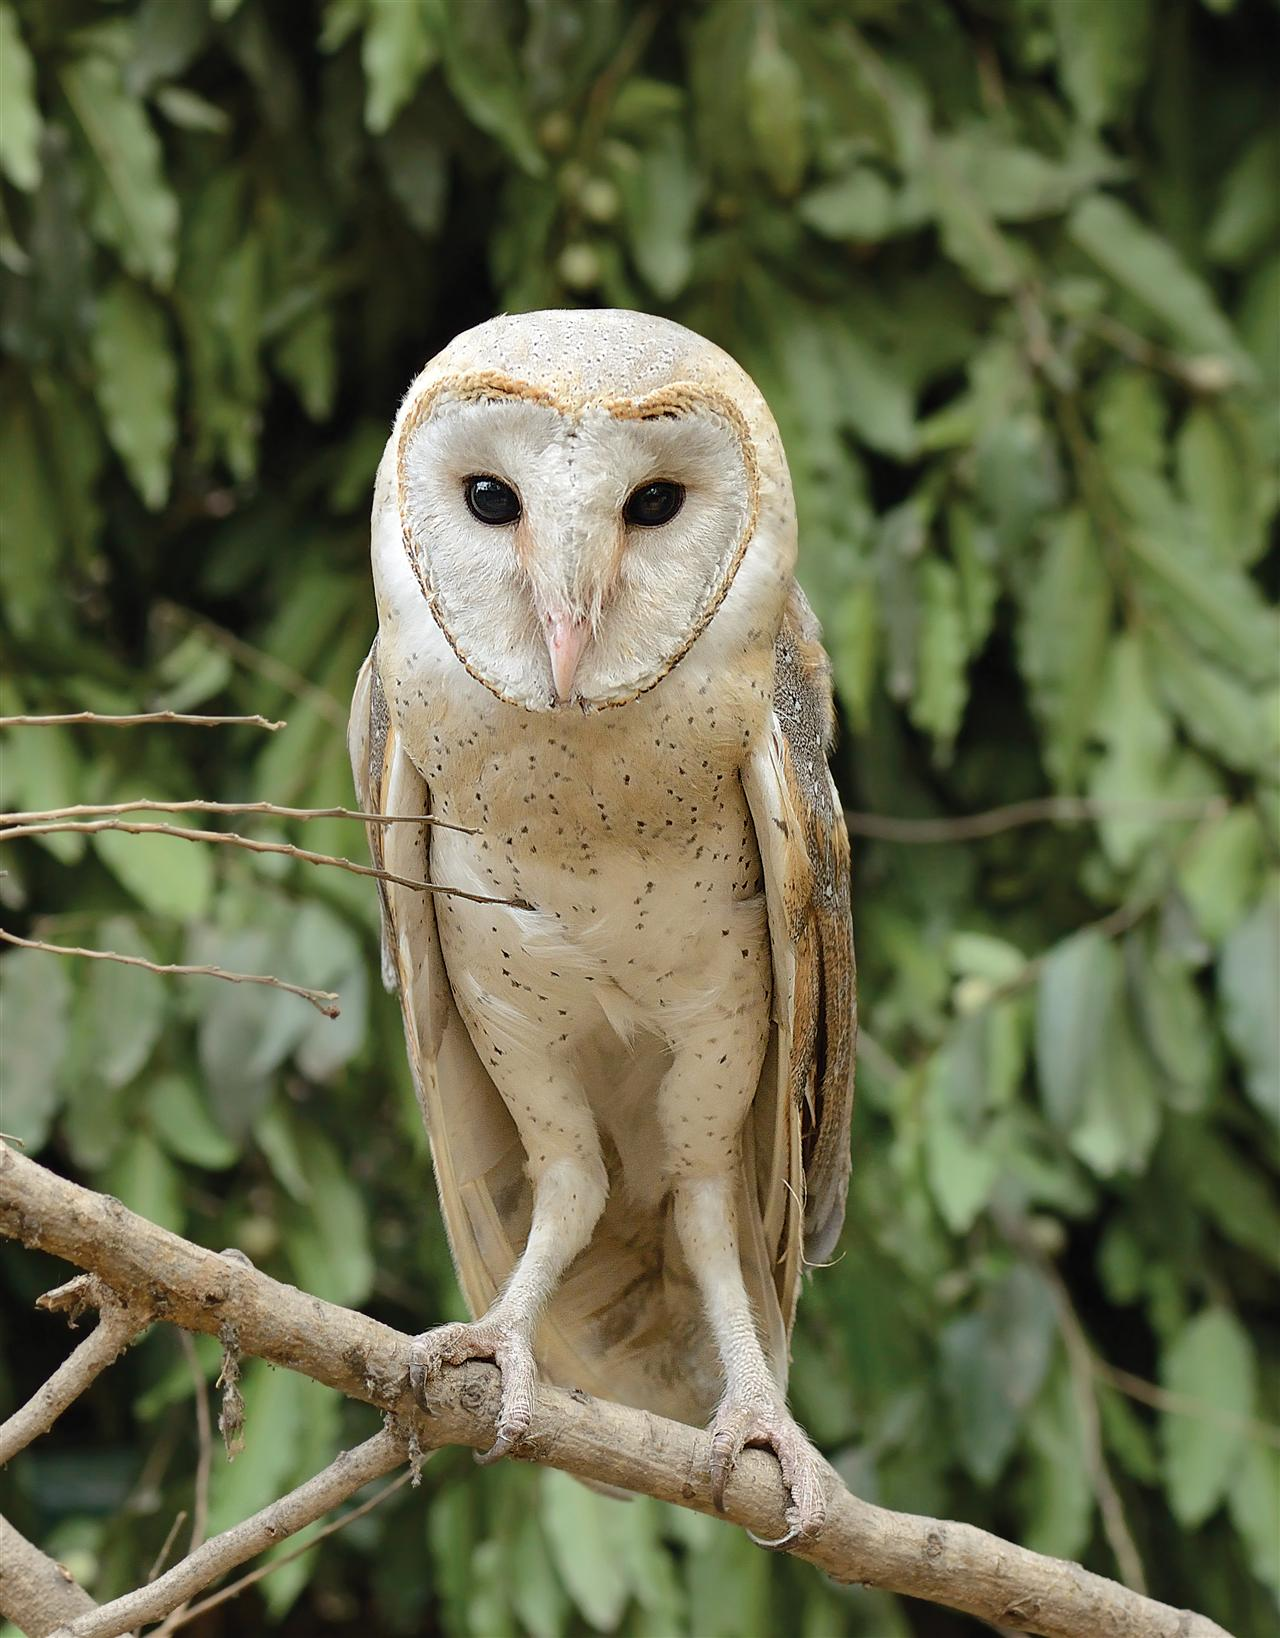 They are rare in the President's Estate. One of the owls photographed was spotted after it sought refuge under the bushes of the forest west of the Polo ground after being attacked by other birds